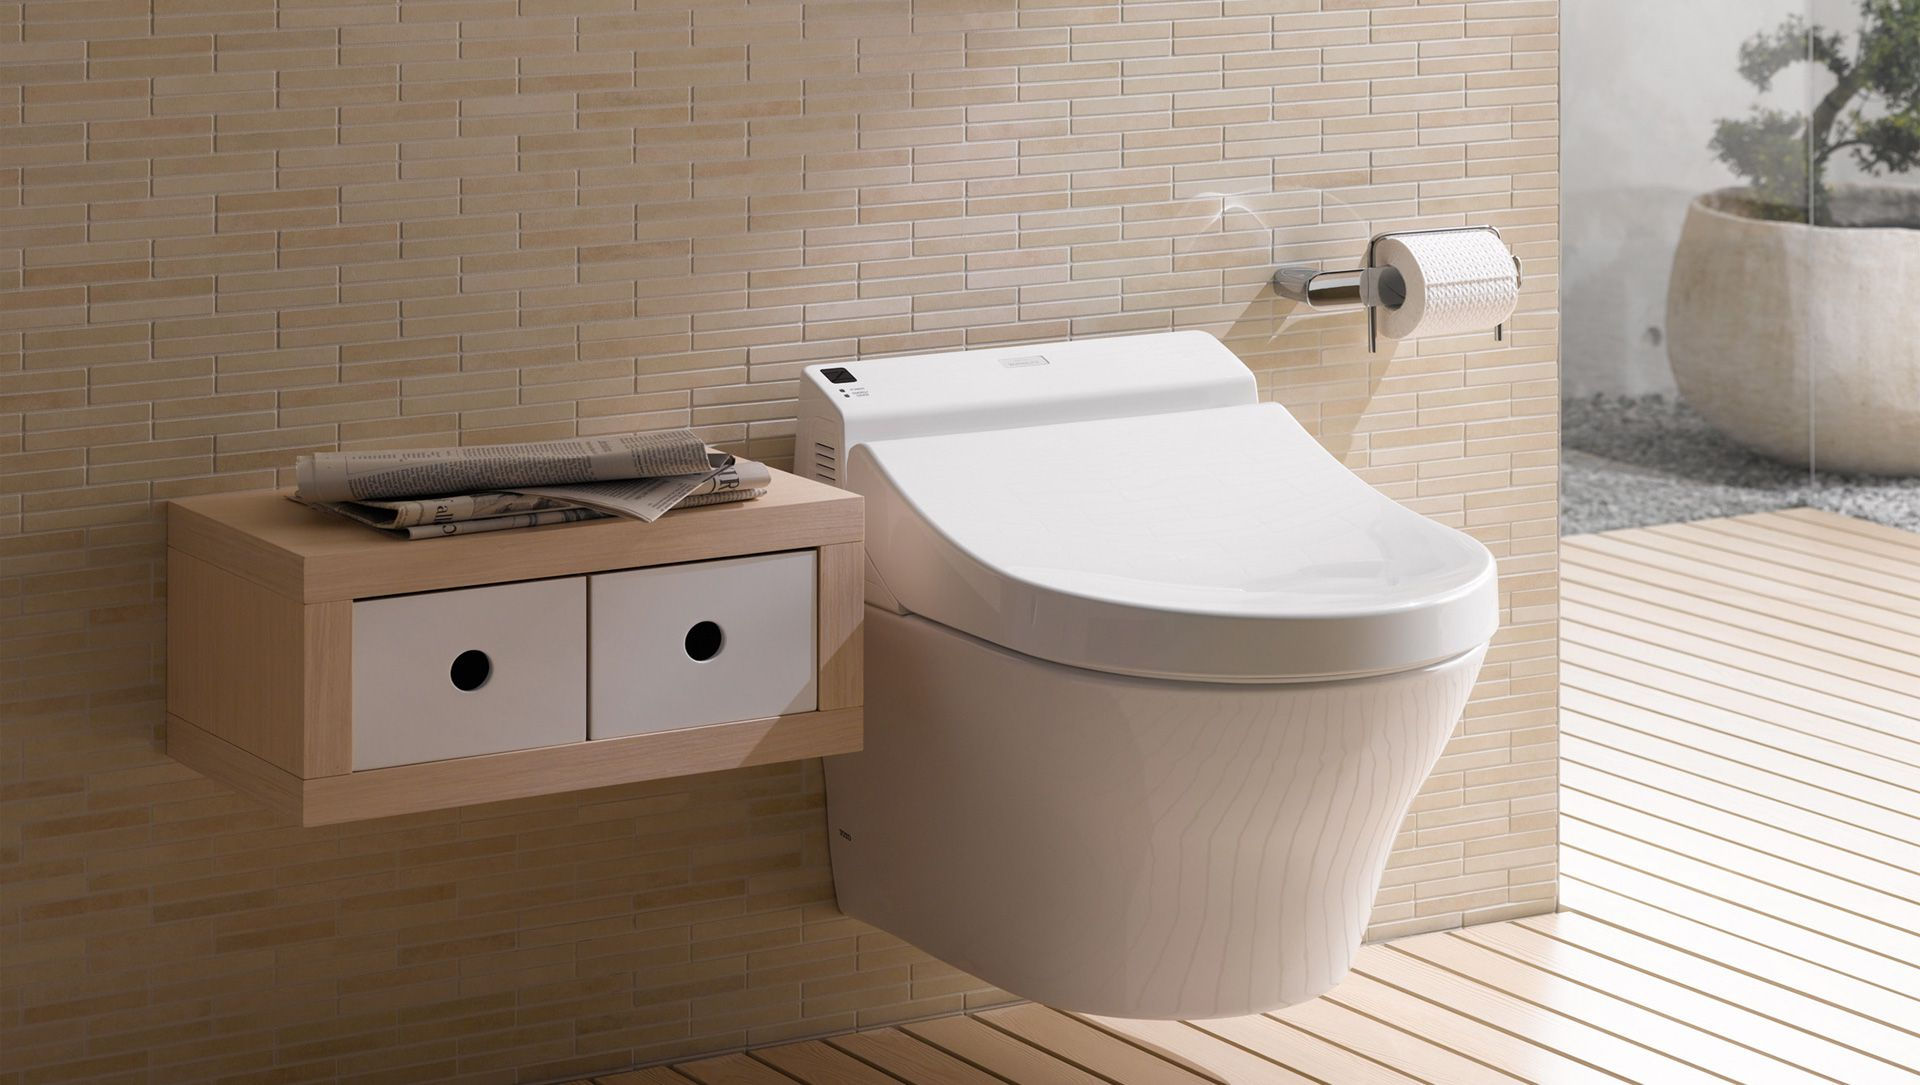 Toto Washlet G Toilet Seat Joins Japan Society Of Mechanical - Toto japanese toilet seat